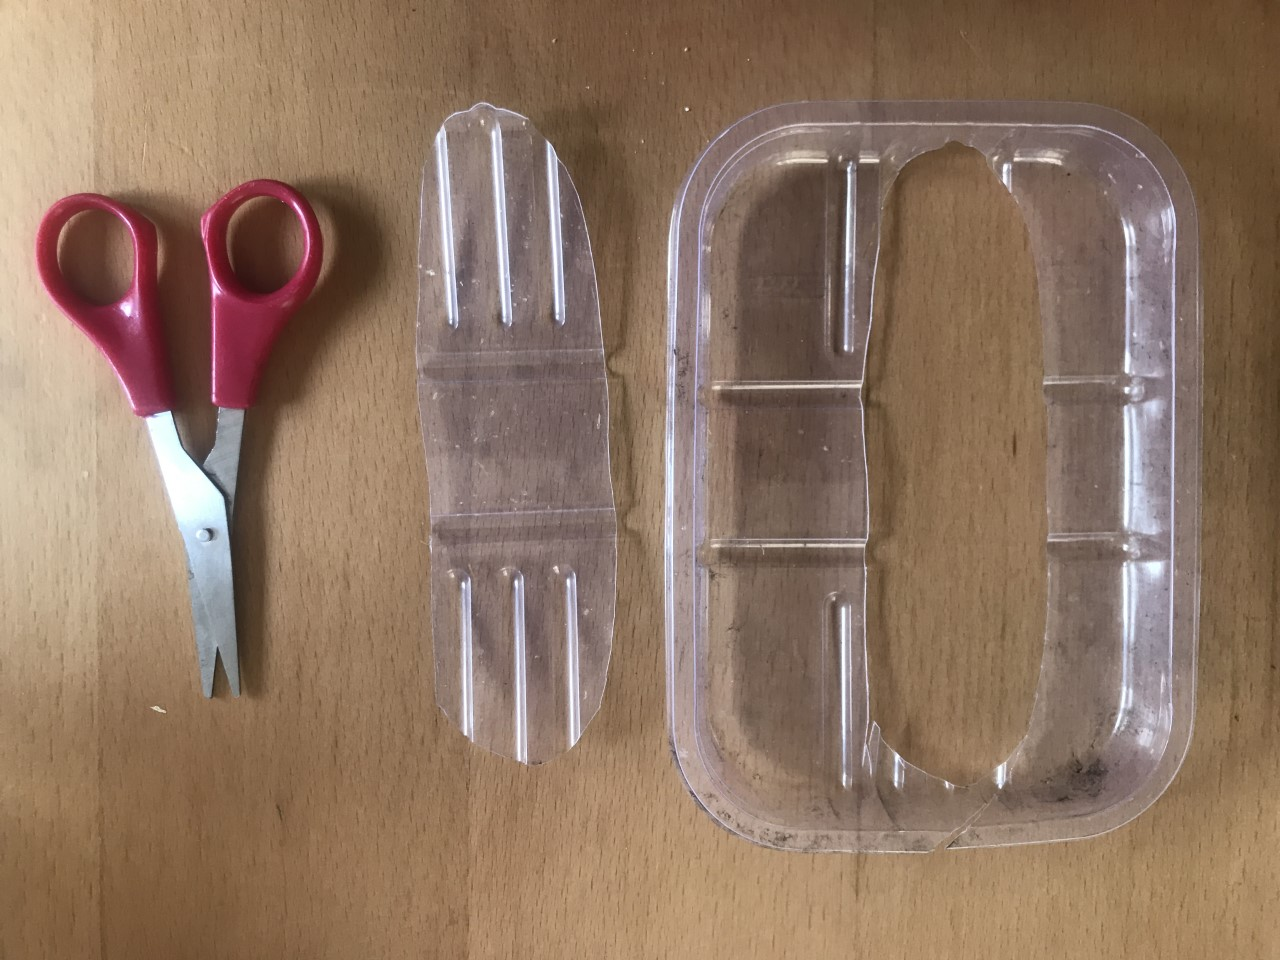 Image shows a pair of red scissors next to a recycled plastic tray. An oval shape has been cut out of the centre.